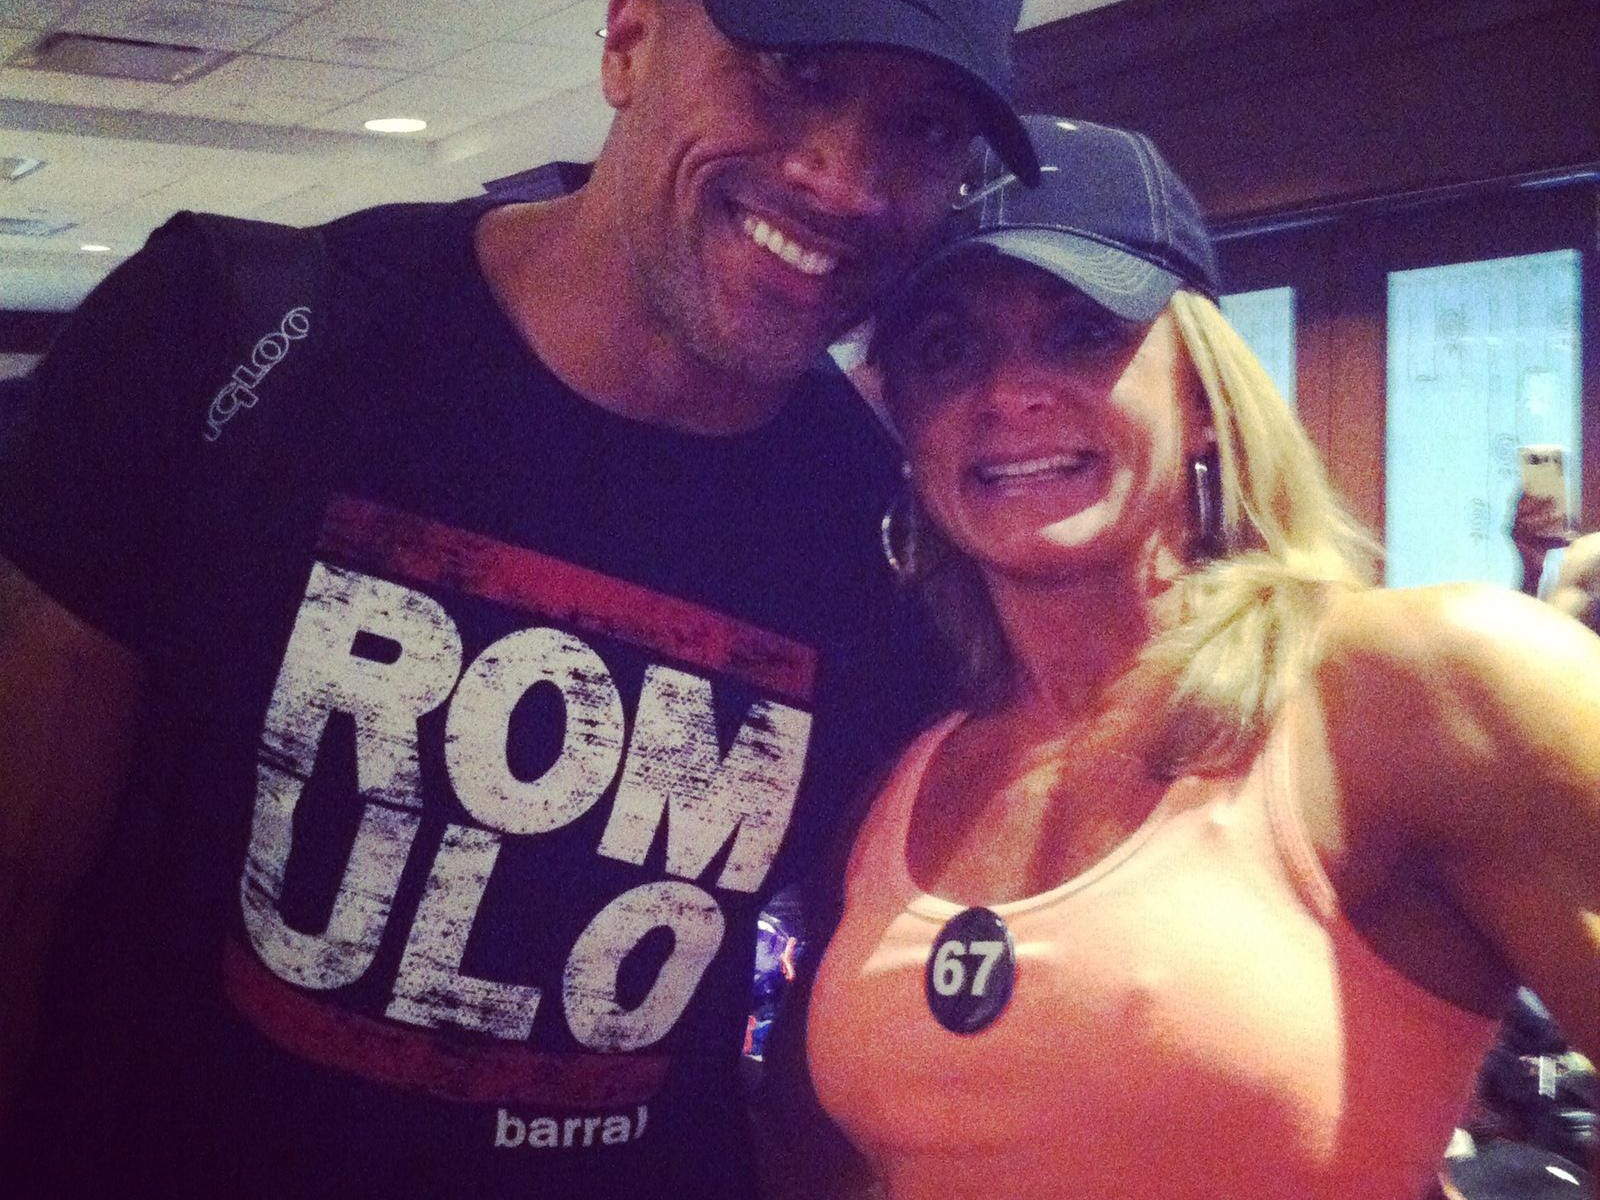 Mo Newman is photographed with Dwayne 'The Rock' Johnson after a show in Pittsburgh in 2014. The parents of Johnson were named the godparents of Mo when she was baptized as an baby.